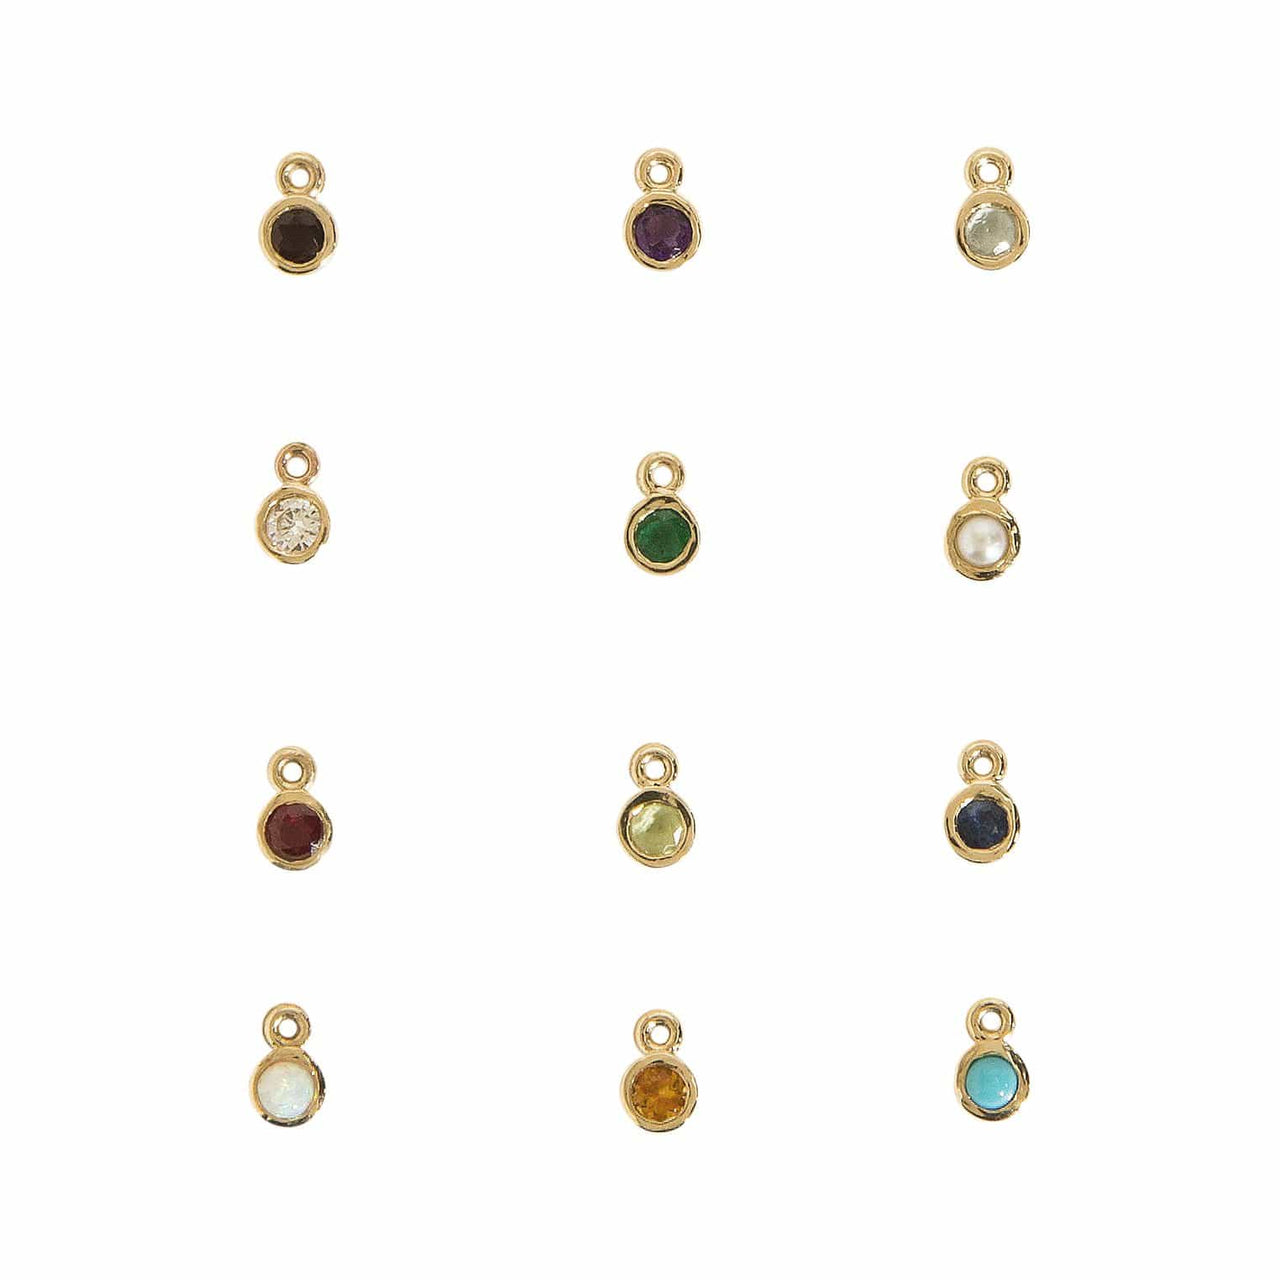 Haati Chai Other Jewelry Birthstone Charm